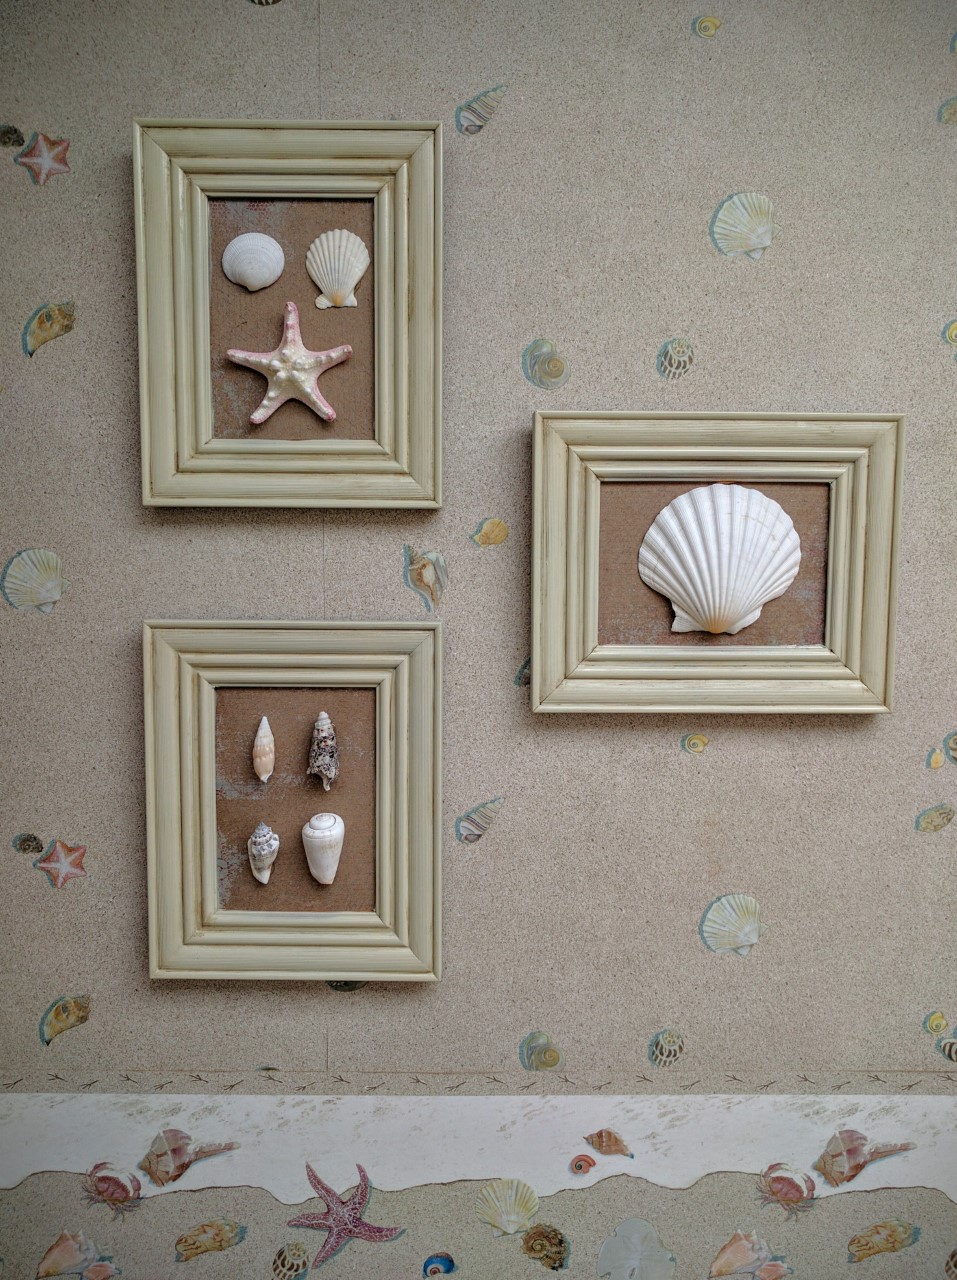 After painting those frames three times, this is the end result. Can you believe that I painted the starfish to match the wallpaper border?